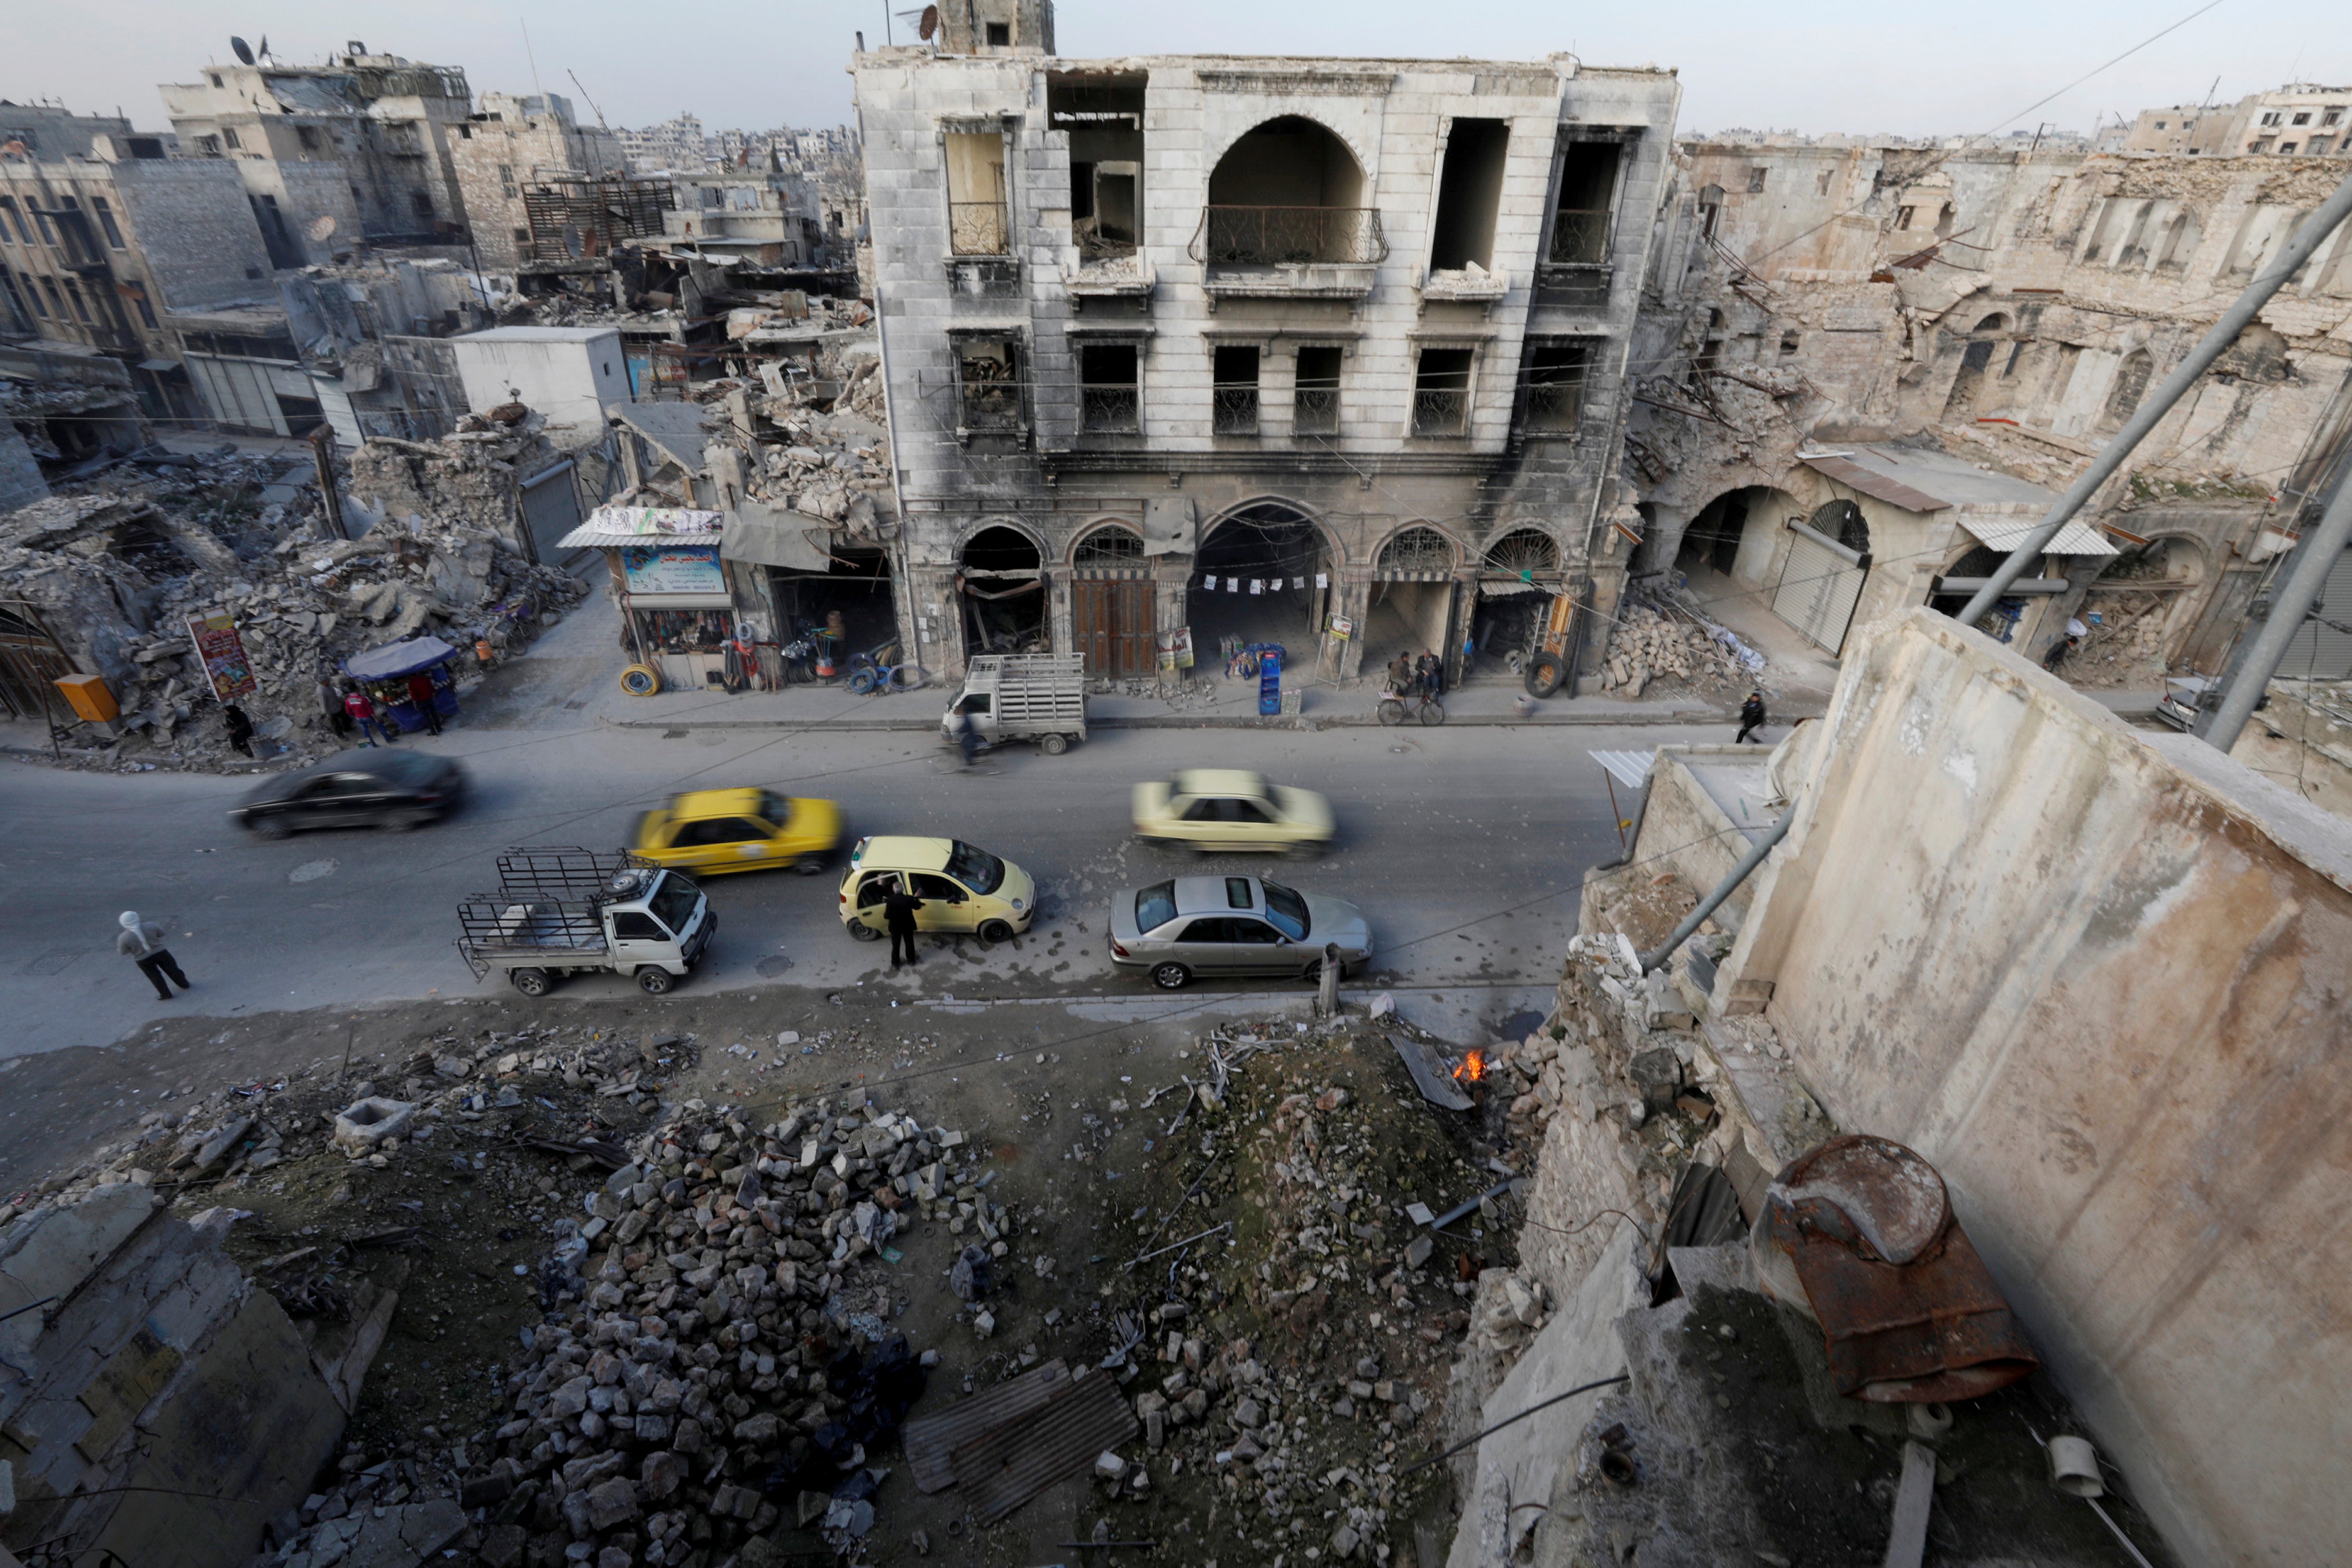 People and cars are seen in old town in Aleppo, Syria February 8, 2018.